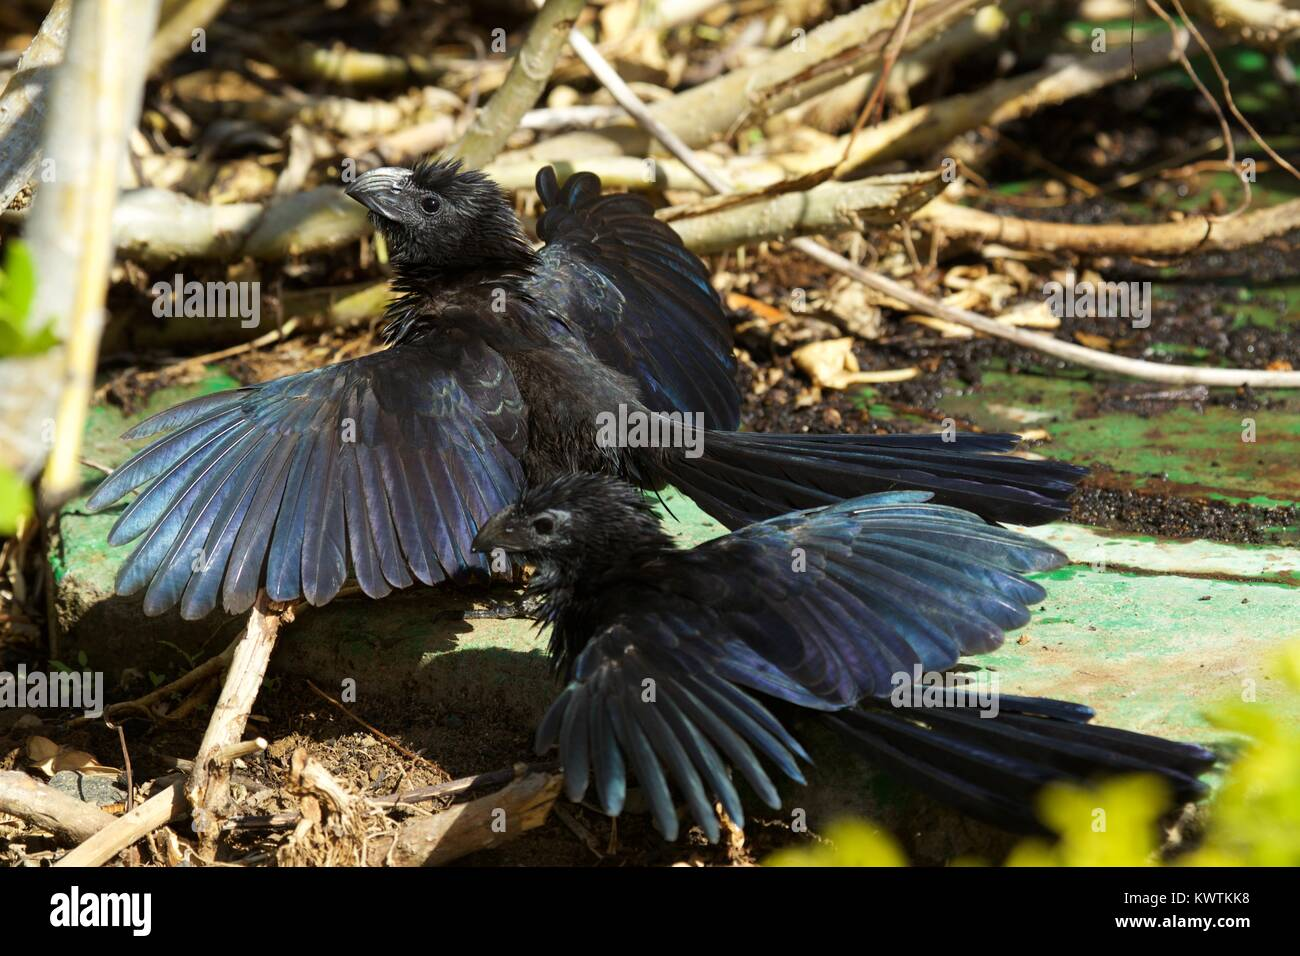 Groove-billed Ani (Crotophaga sulcirostris) sunbathing at Las Mareas, Costa Rica - Stock Image